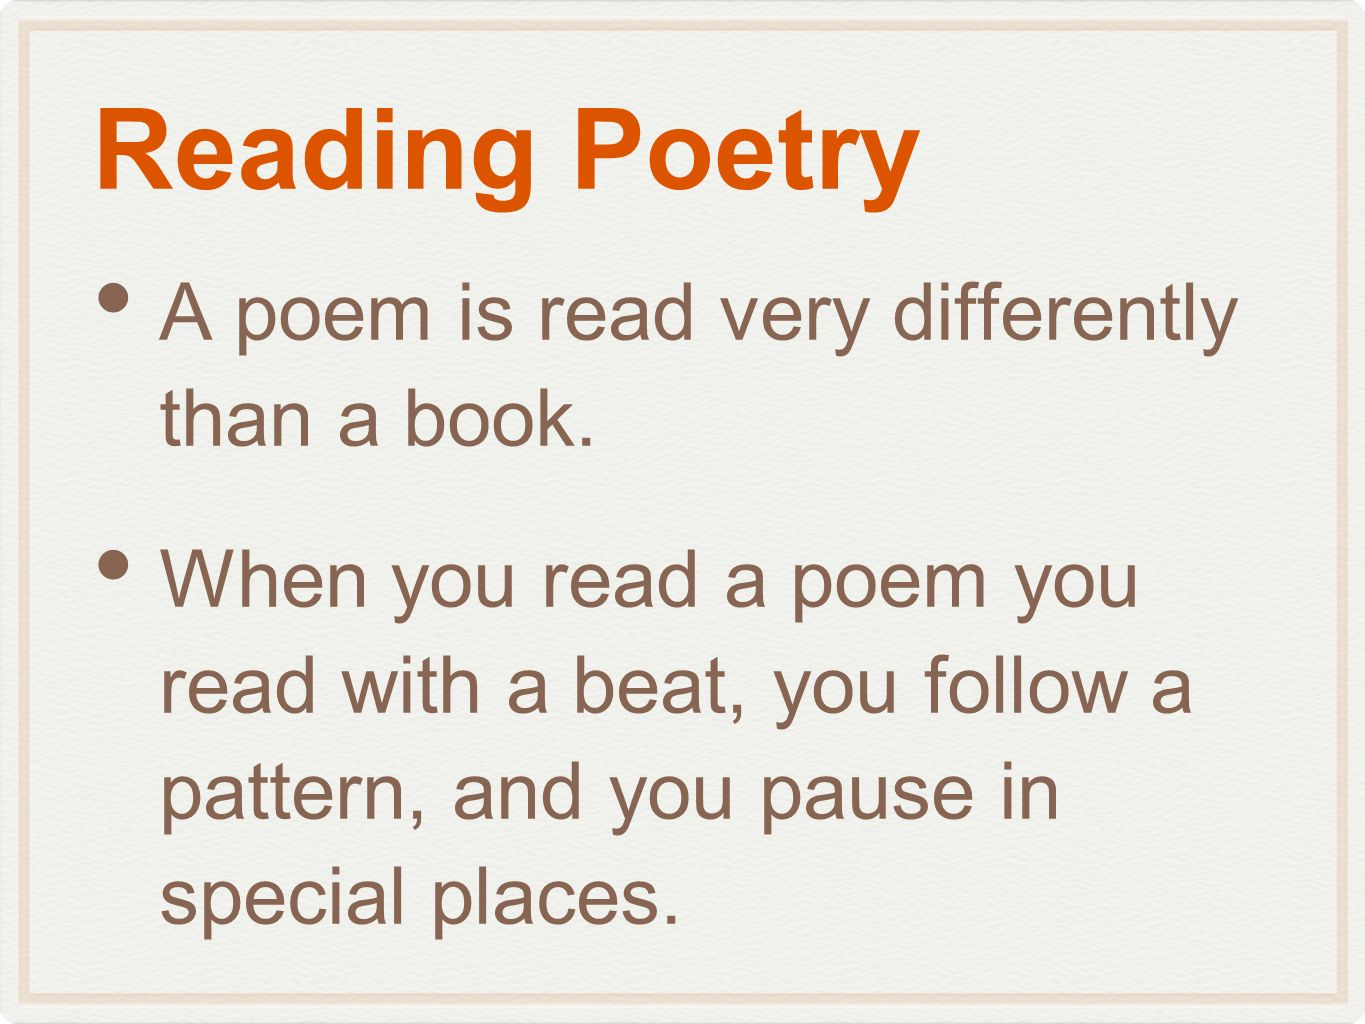 Reading Poetry A poem is read very differently than a book. When you read a poem you read with a beat, you follow a pattern, and you pause in special